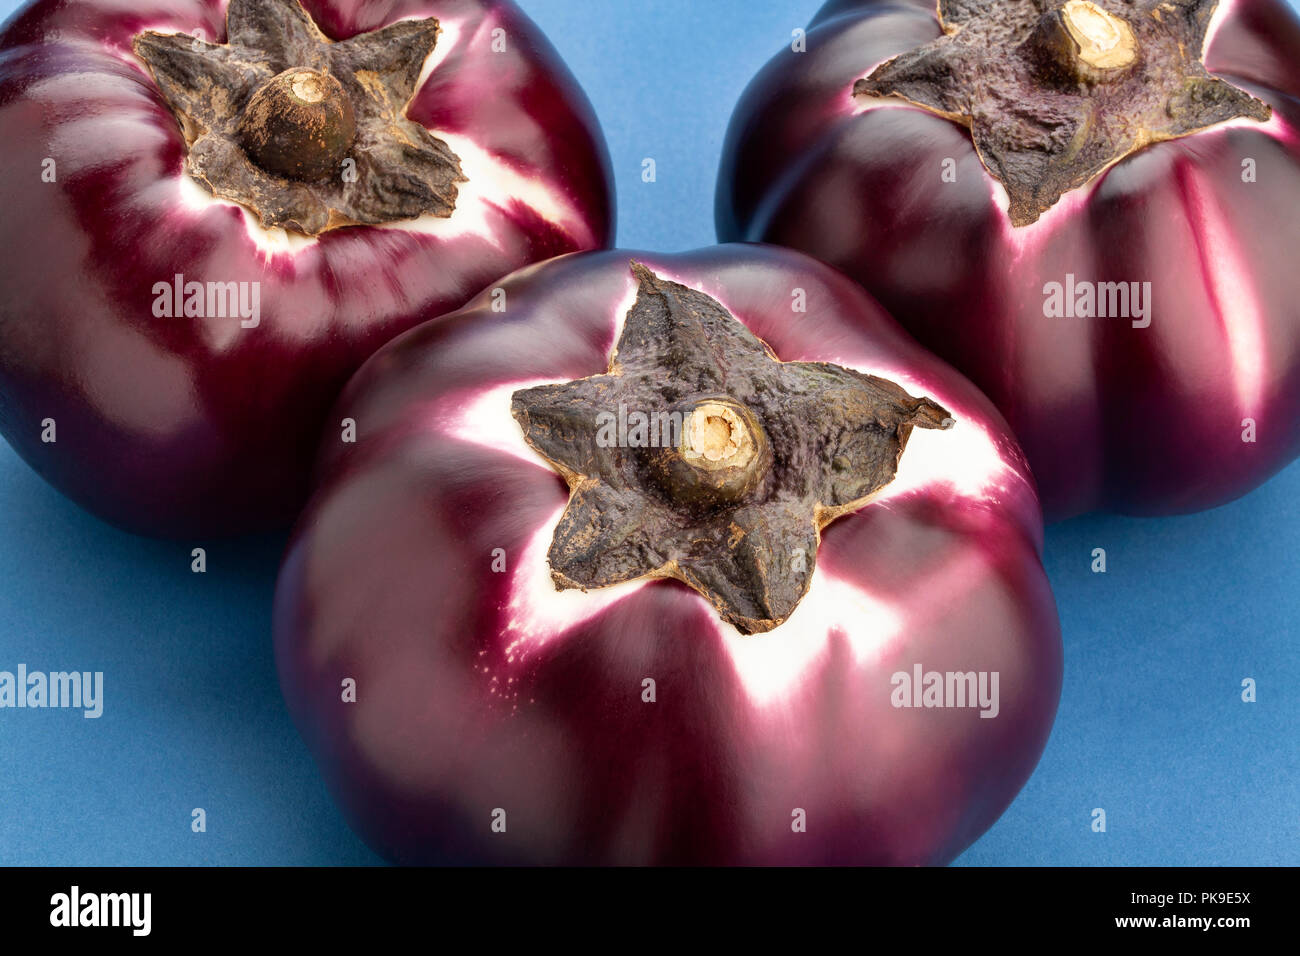 round mauve eggplant on blue background - Stock Image